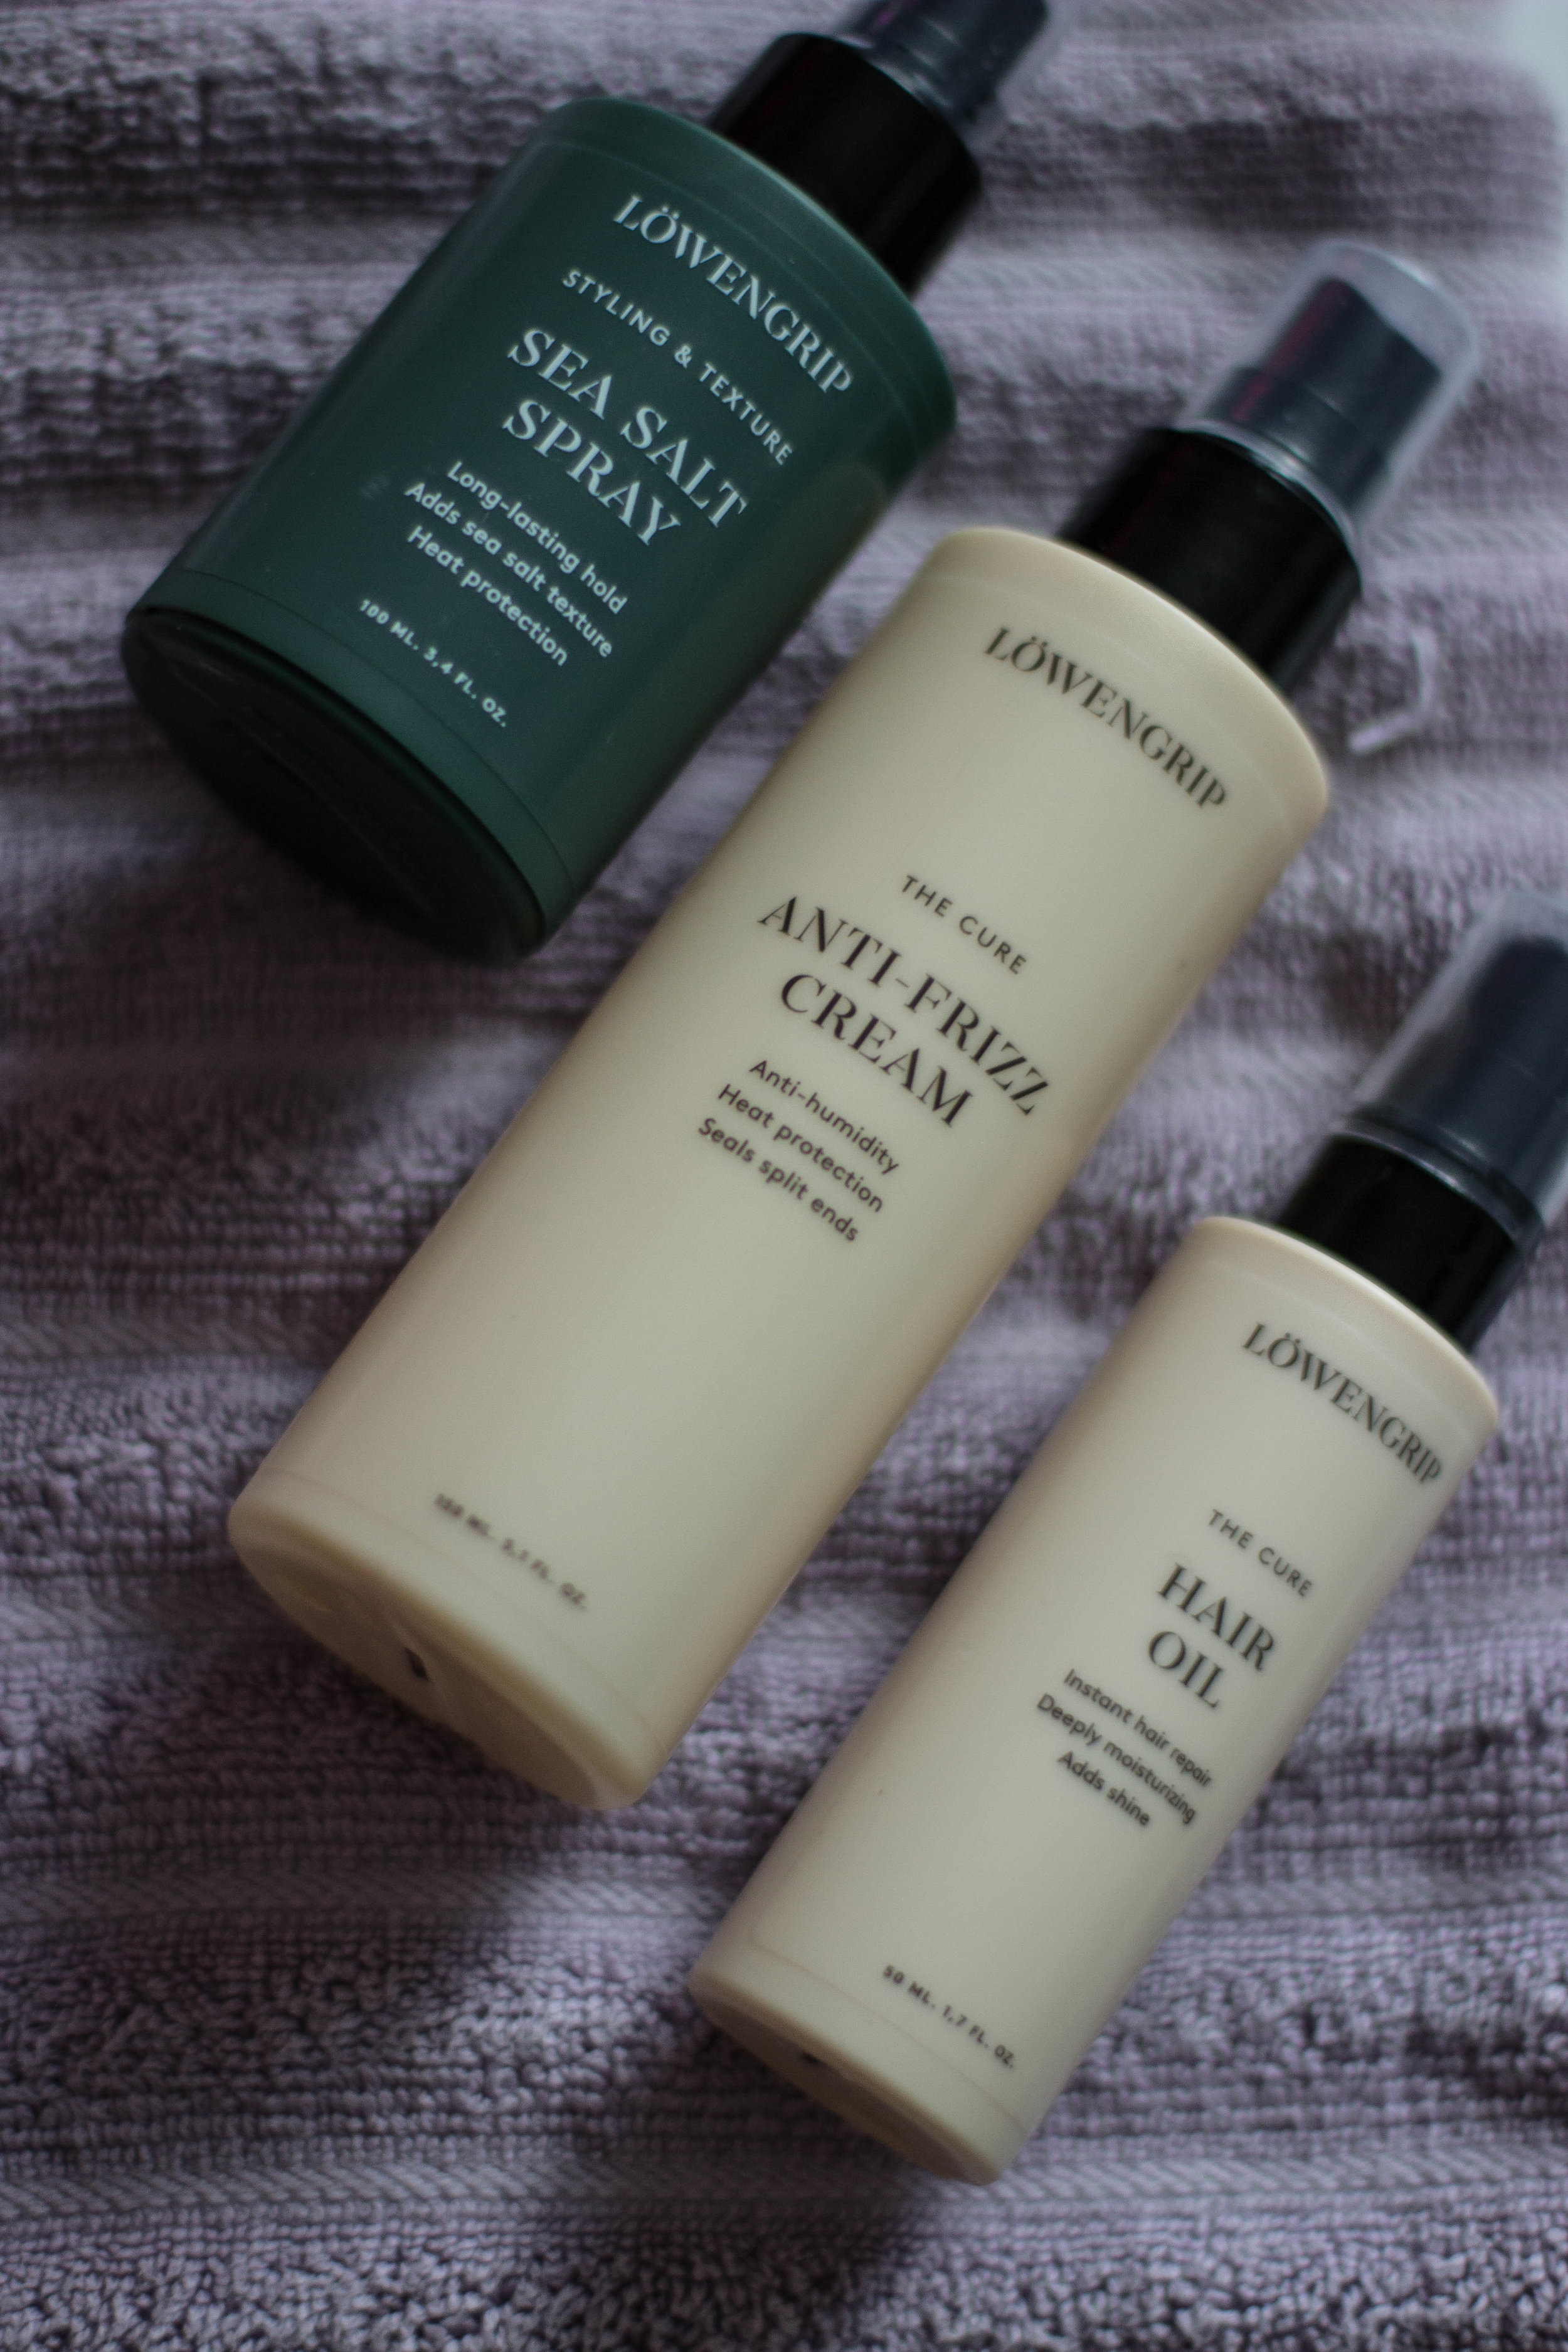 löwengrip, antifrizz,oil, hairoil, hair, haircare, beauty, aboutthatlook